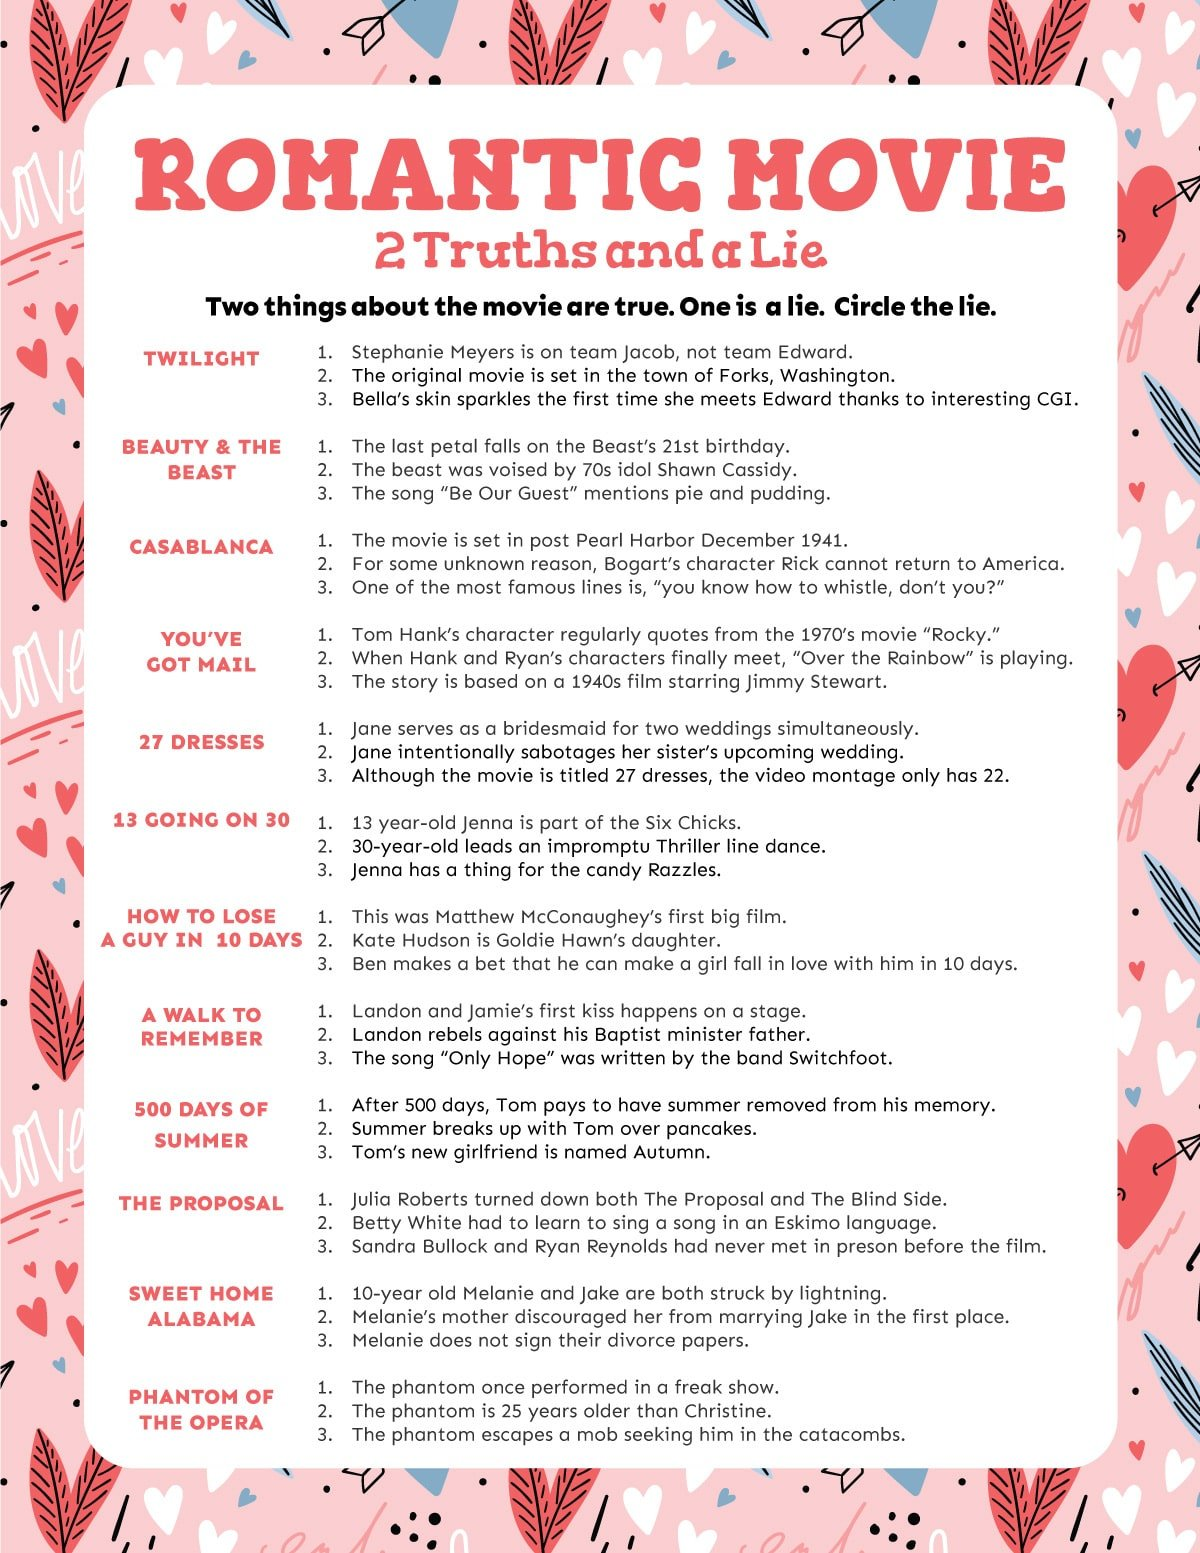 Printed out movie two truths and a lie game